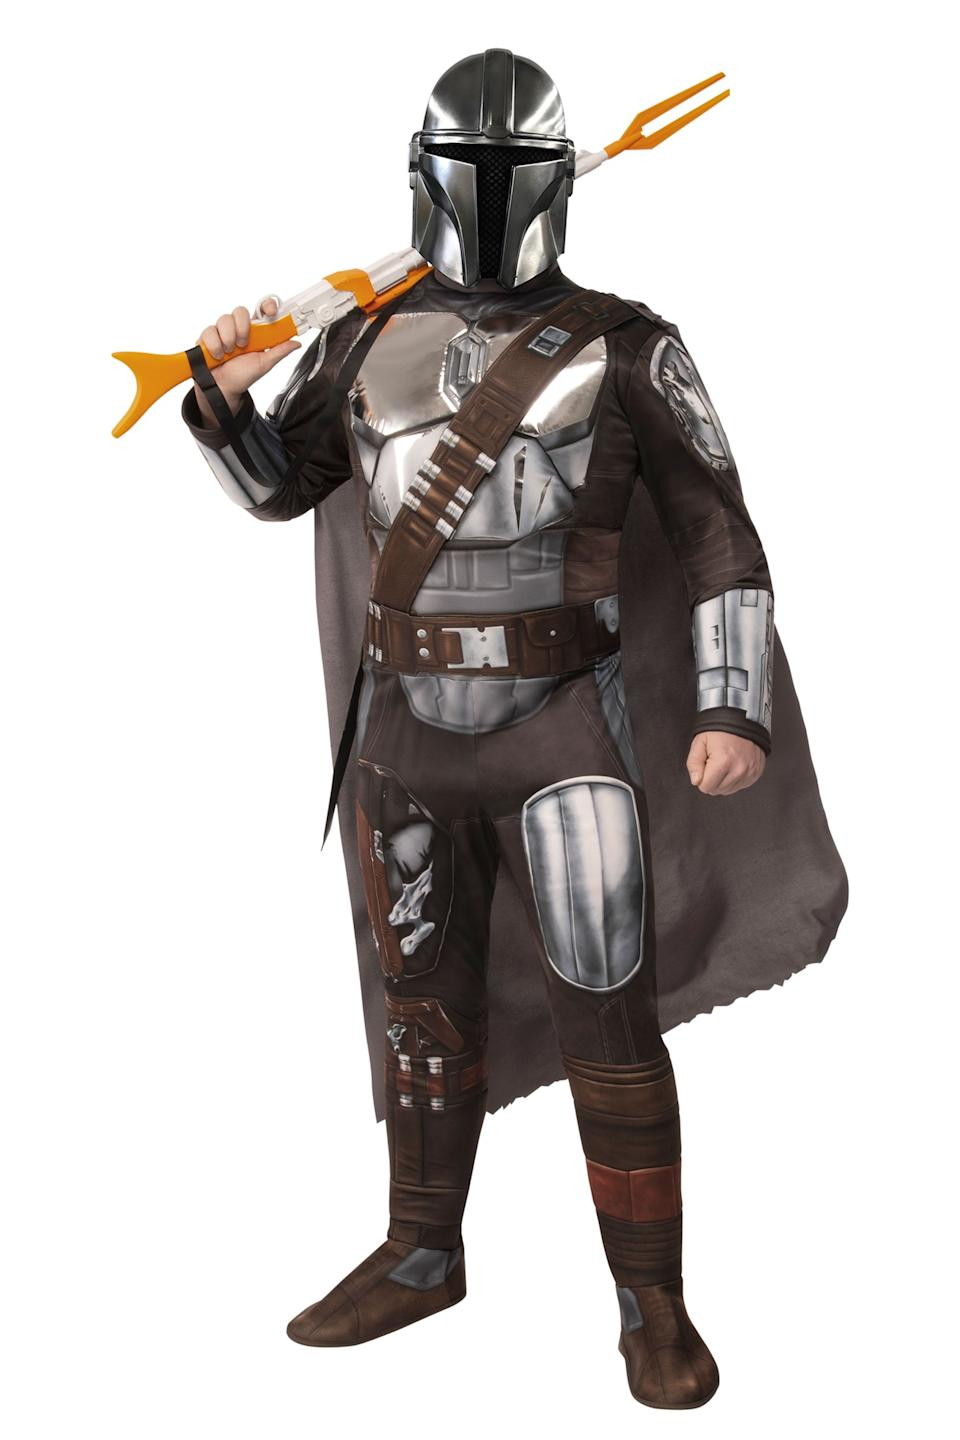 Mandalorian Beskar Armor Men's Costume. Photo via halloweencostumes.com